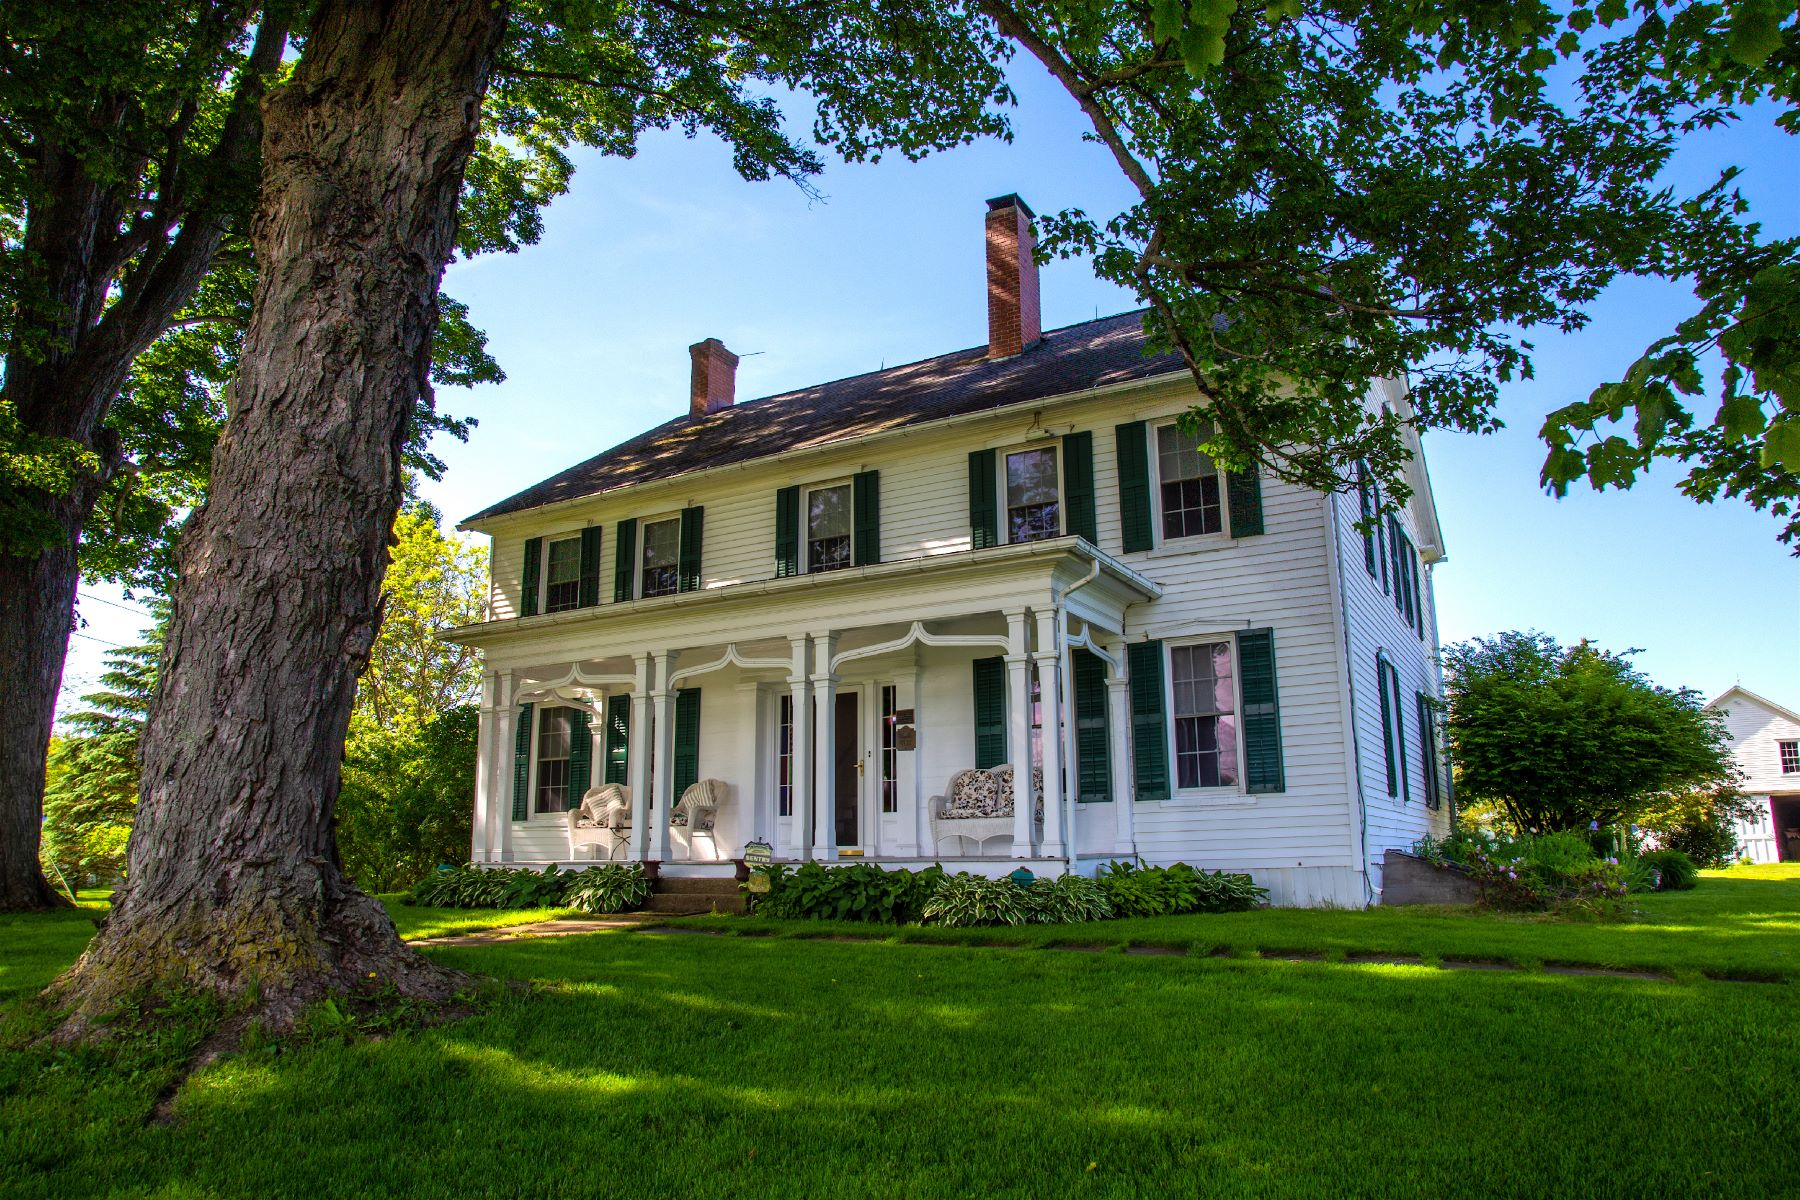 Single Family Homes für Verkauf beim The Beardslee Homestead 101 State Highway 80, New Berlin, New York 13411 Vereinigte Staaten